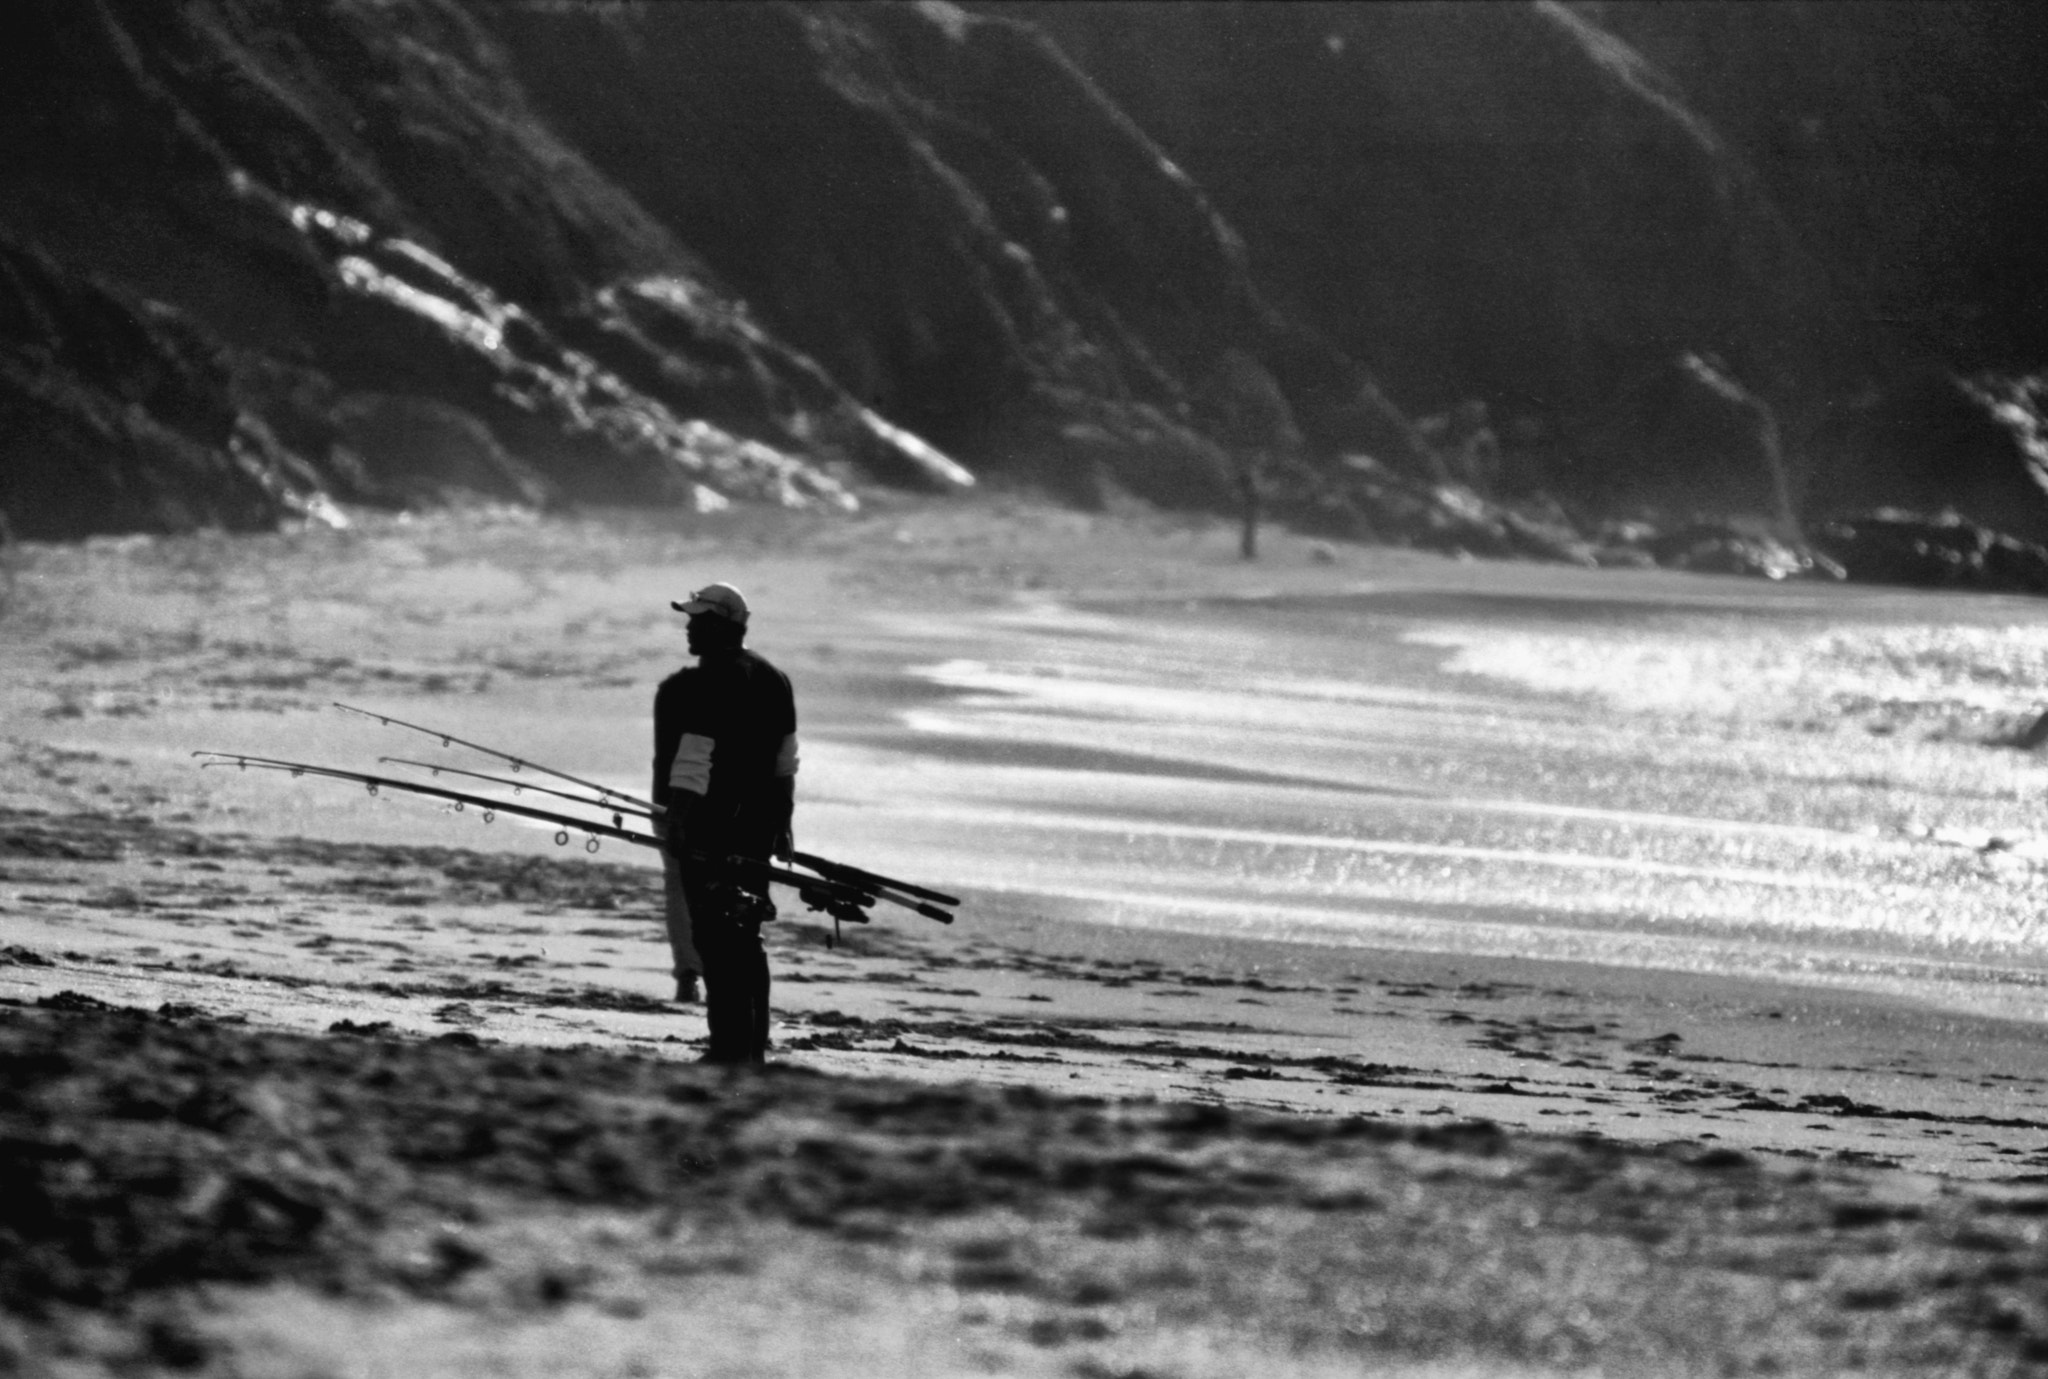 Photograph Cron Fisherman by Natalie Nesser on 500px